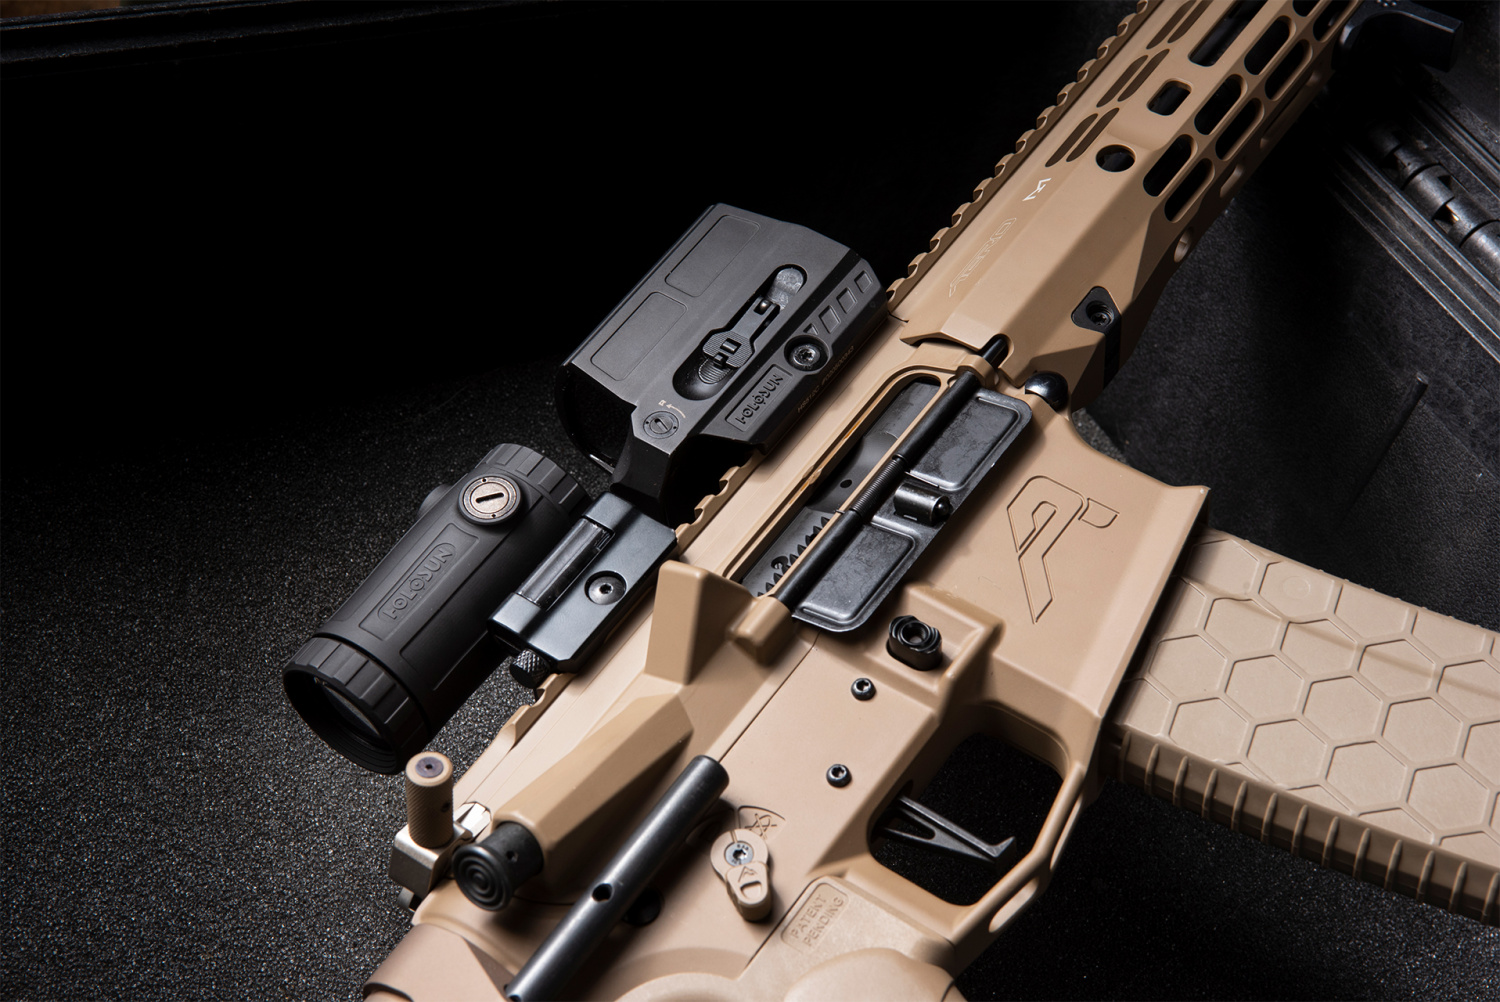 Here Holosun shows off their new magnifier mounted behind one of their 512 series reflex sights.